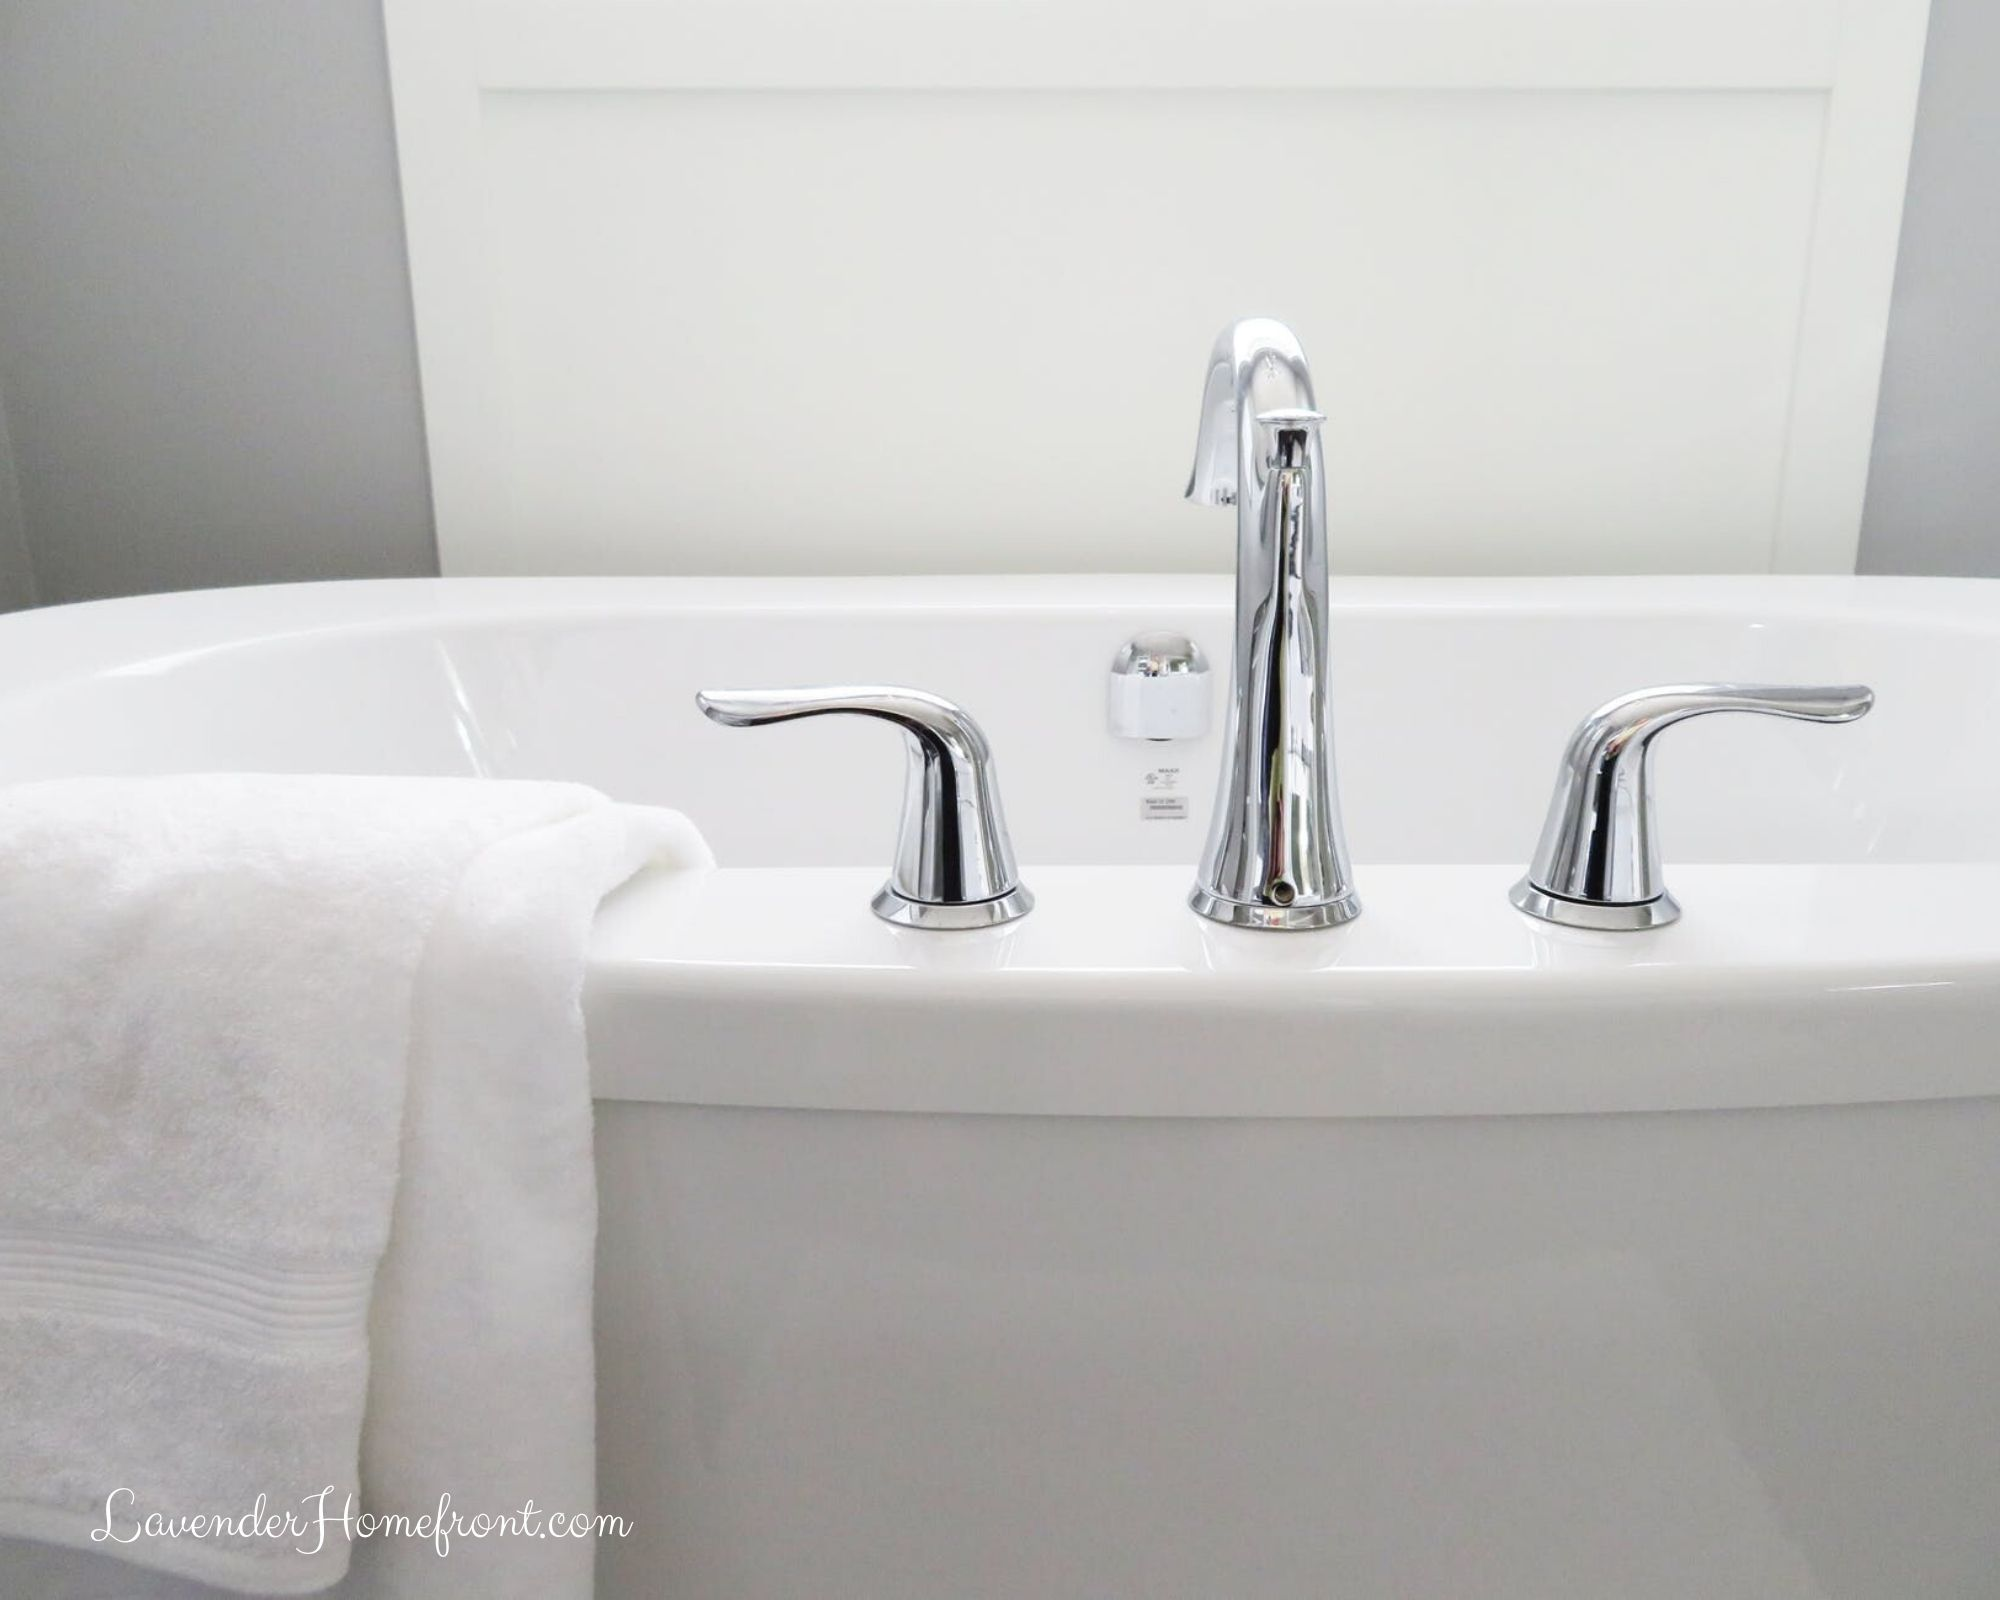 non-toxic cleaning solutions for the bathroom